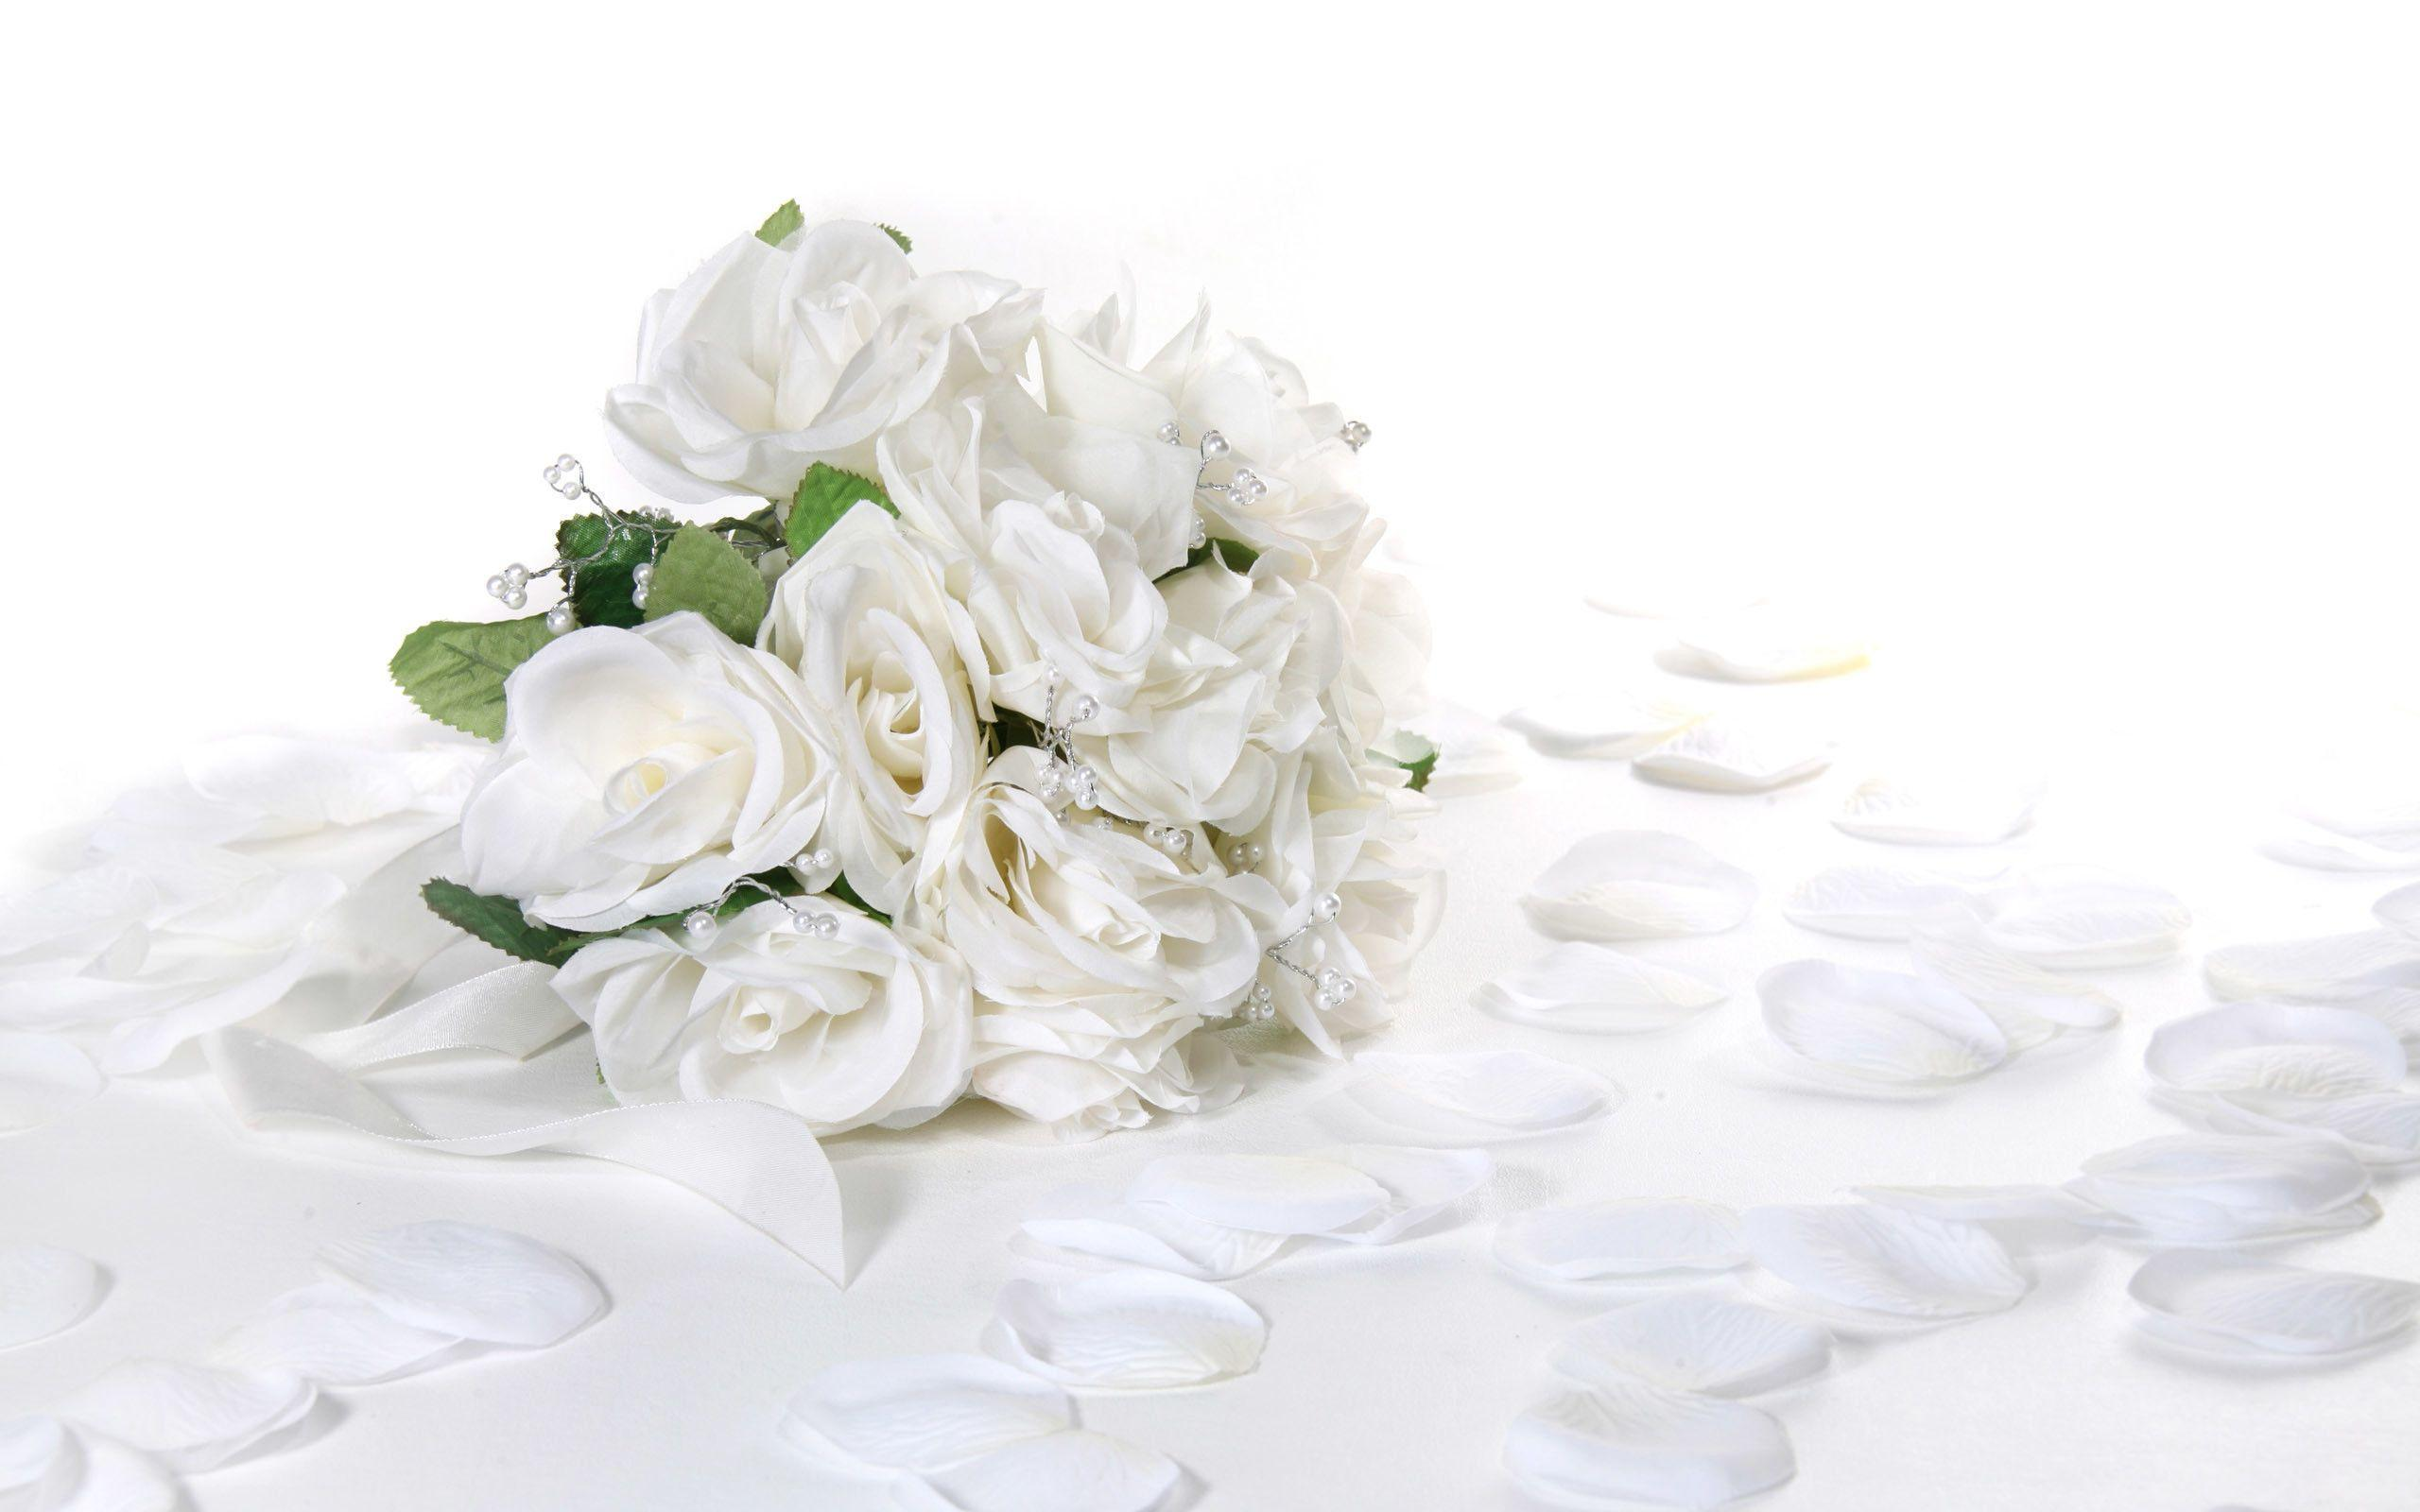 white wedding bouquet wallpaper - photo #20